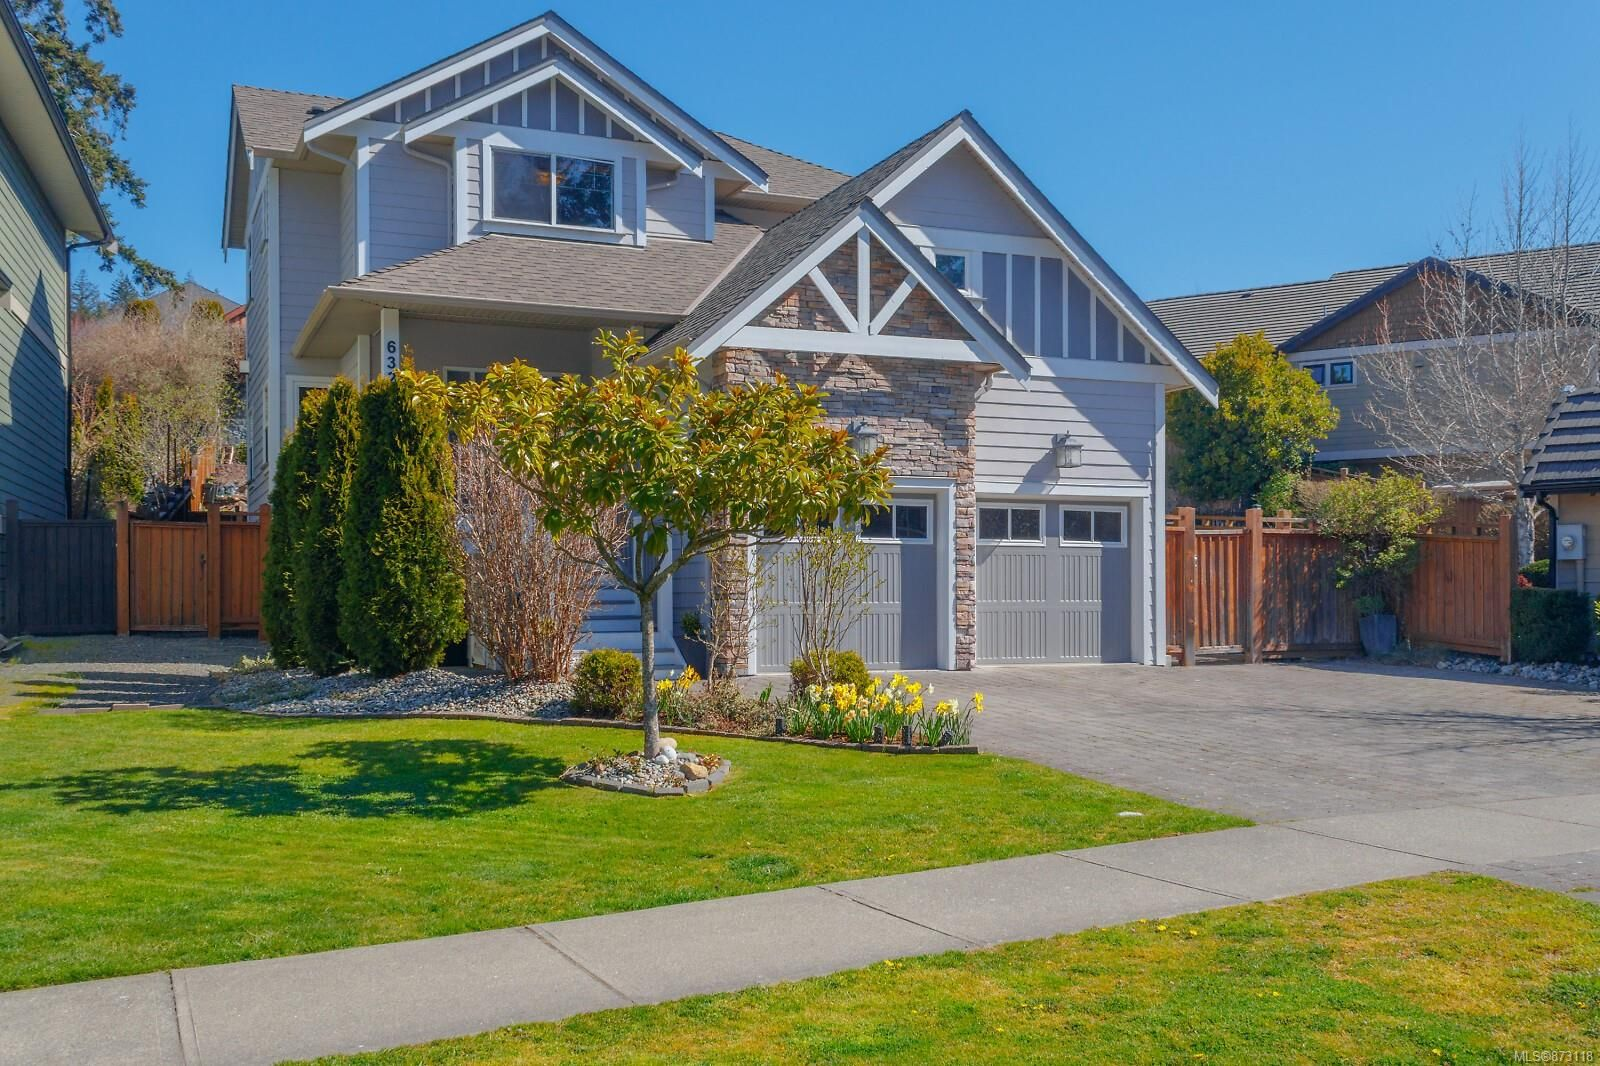 Main Photo: 632 Brookside Rd in : Co Latoria House for sale (Colwood)  : MLS®# 873118